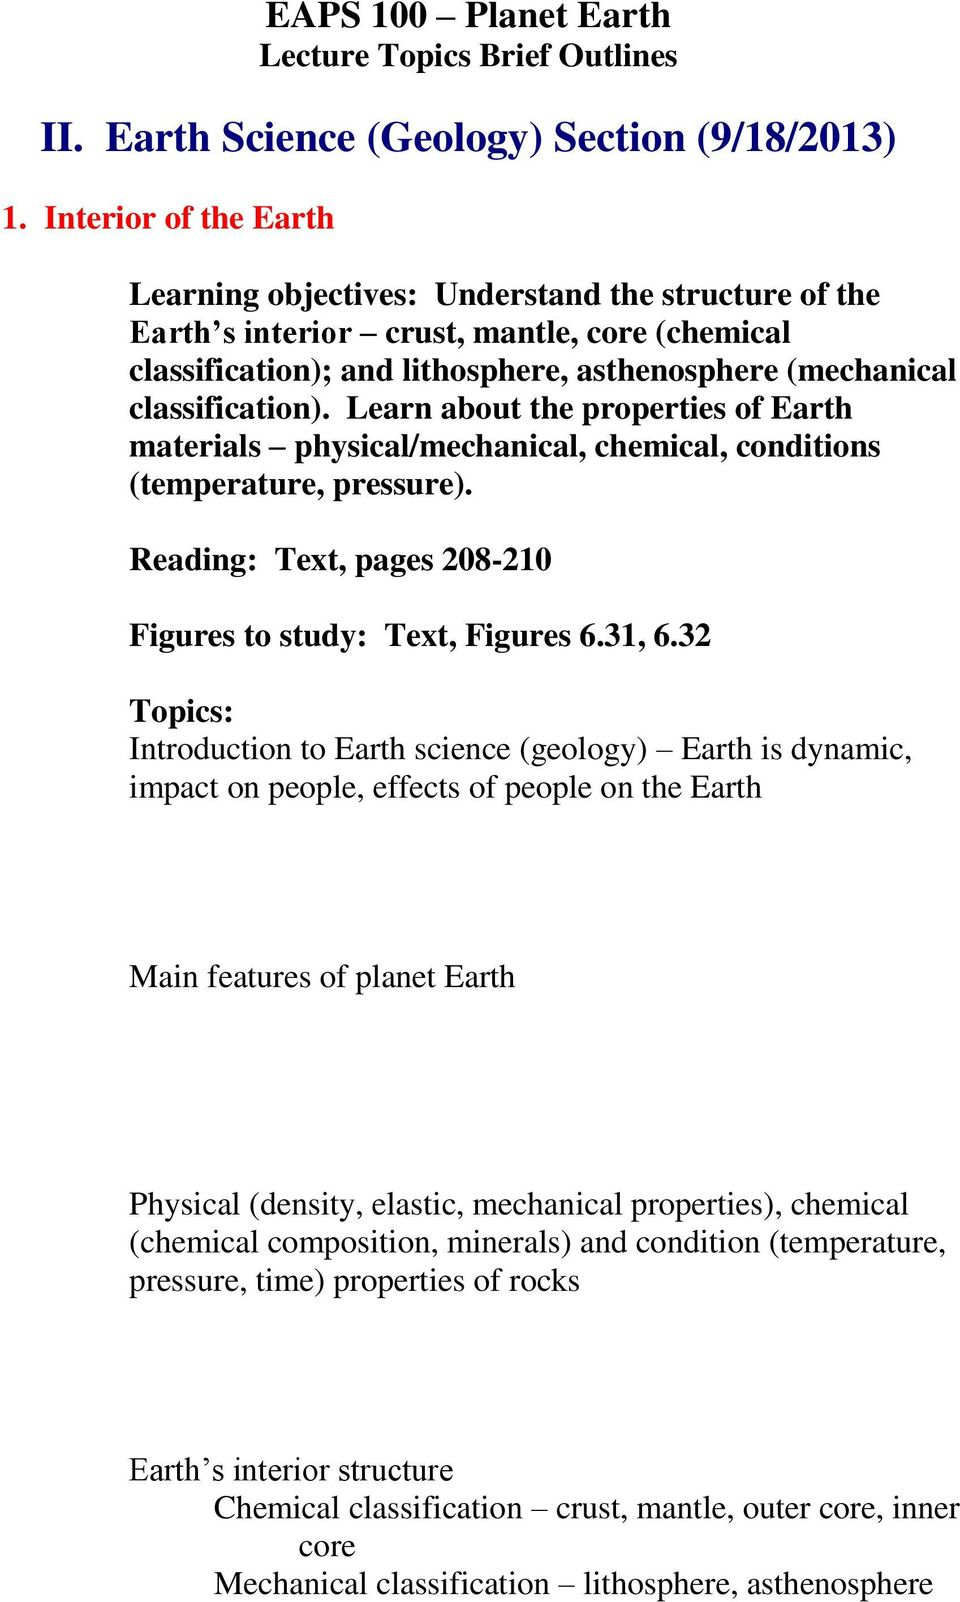 Learn about the properties of Earth materials physical/mechanical, chemical, conditions (temperature, pressure). Reading: Text, pages 208-210 Figures to study: Text, Figures 6.31, 6.